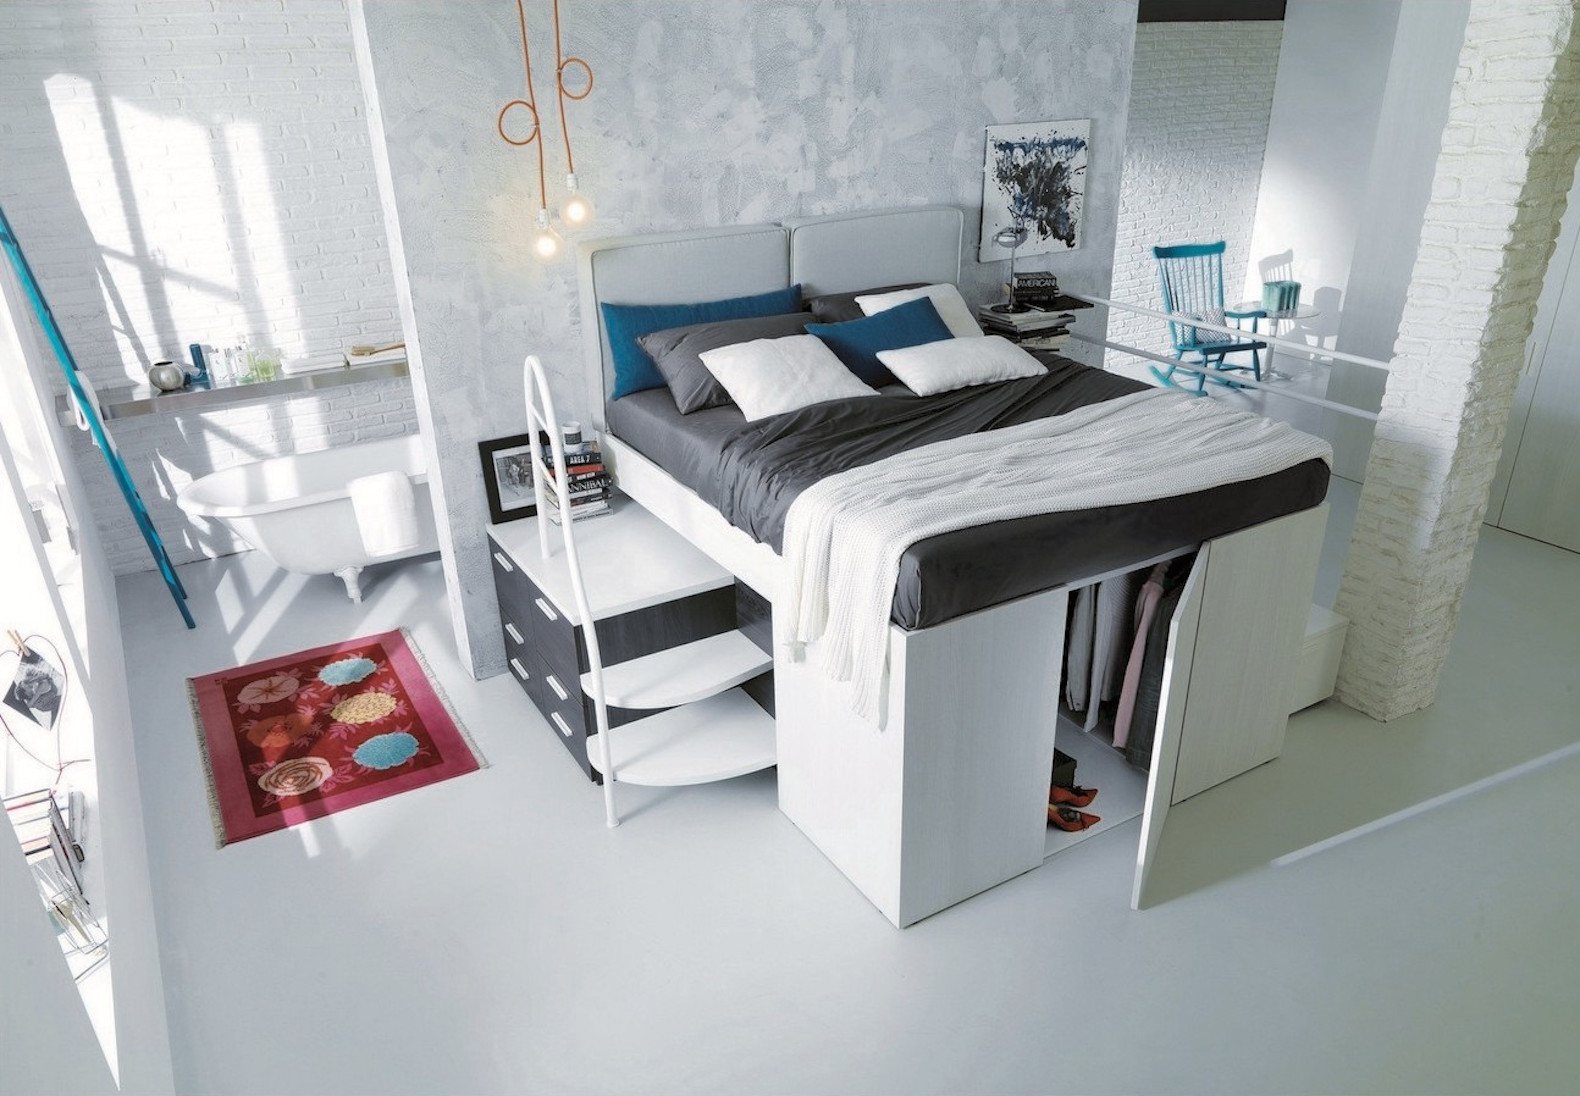 Beds That Save Space space saving furniture | inhabitat - green design, innovation